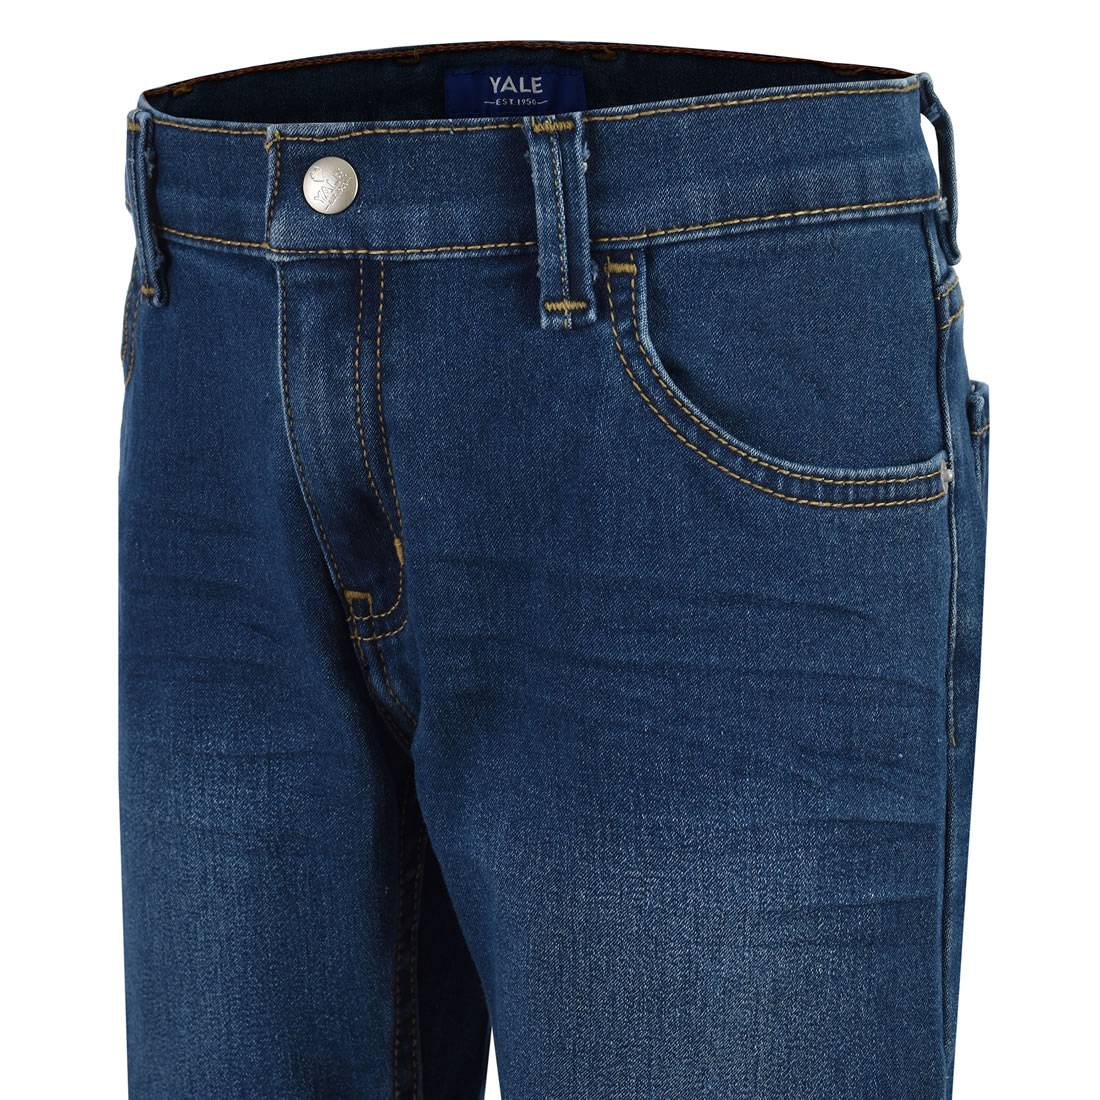 021403206917-03-Jeans-Boys-Boot-Cut-Hand-Sand-Whiskers-Con-Elastano-Cintura-Ajustable-Super-Stone-yale